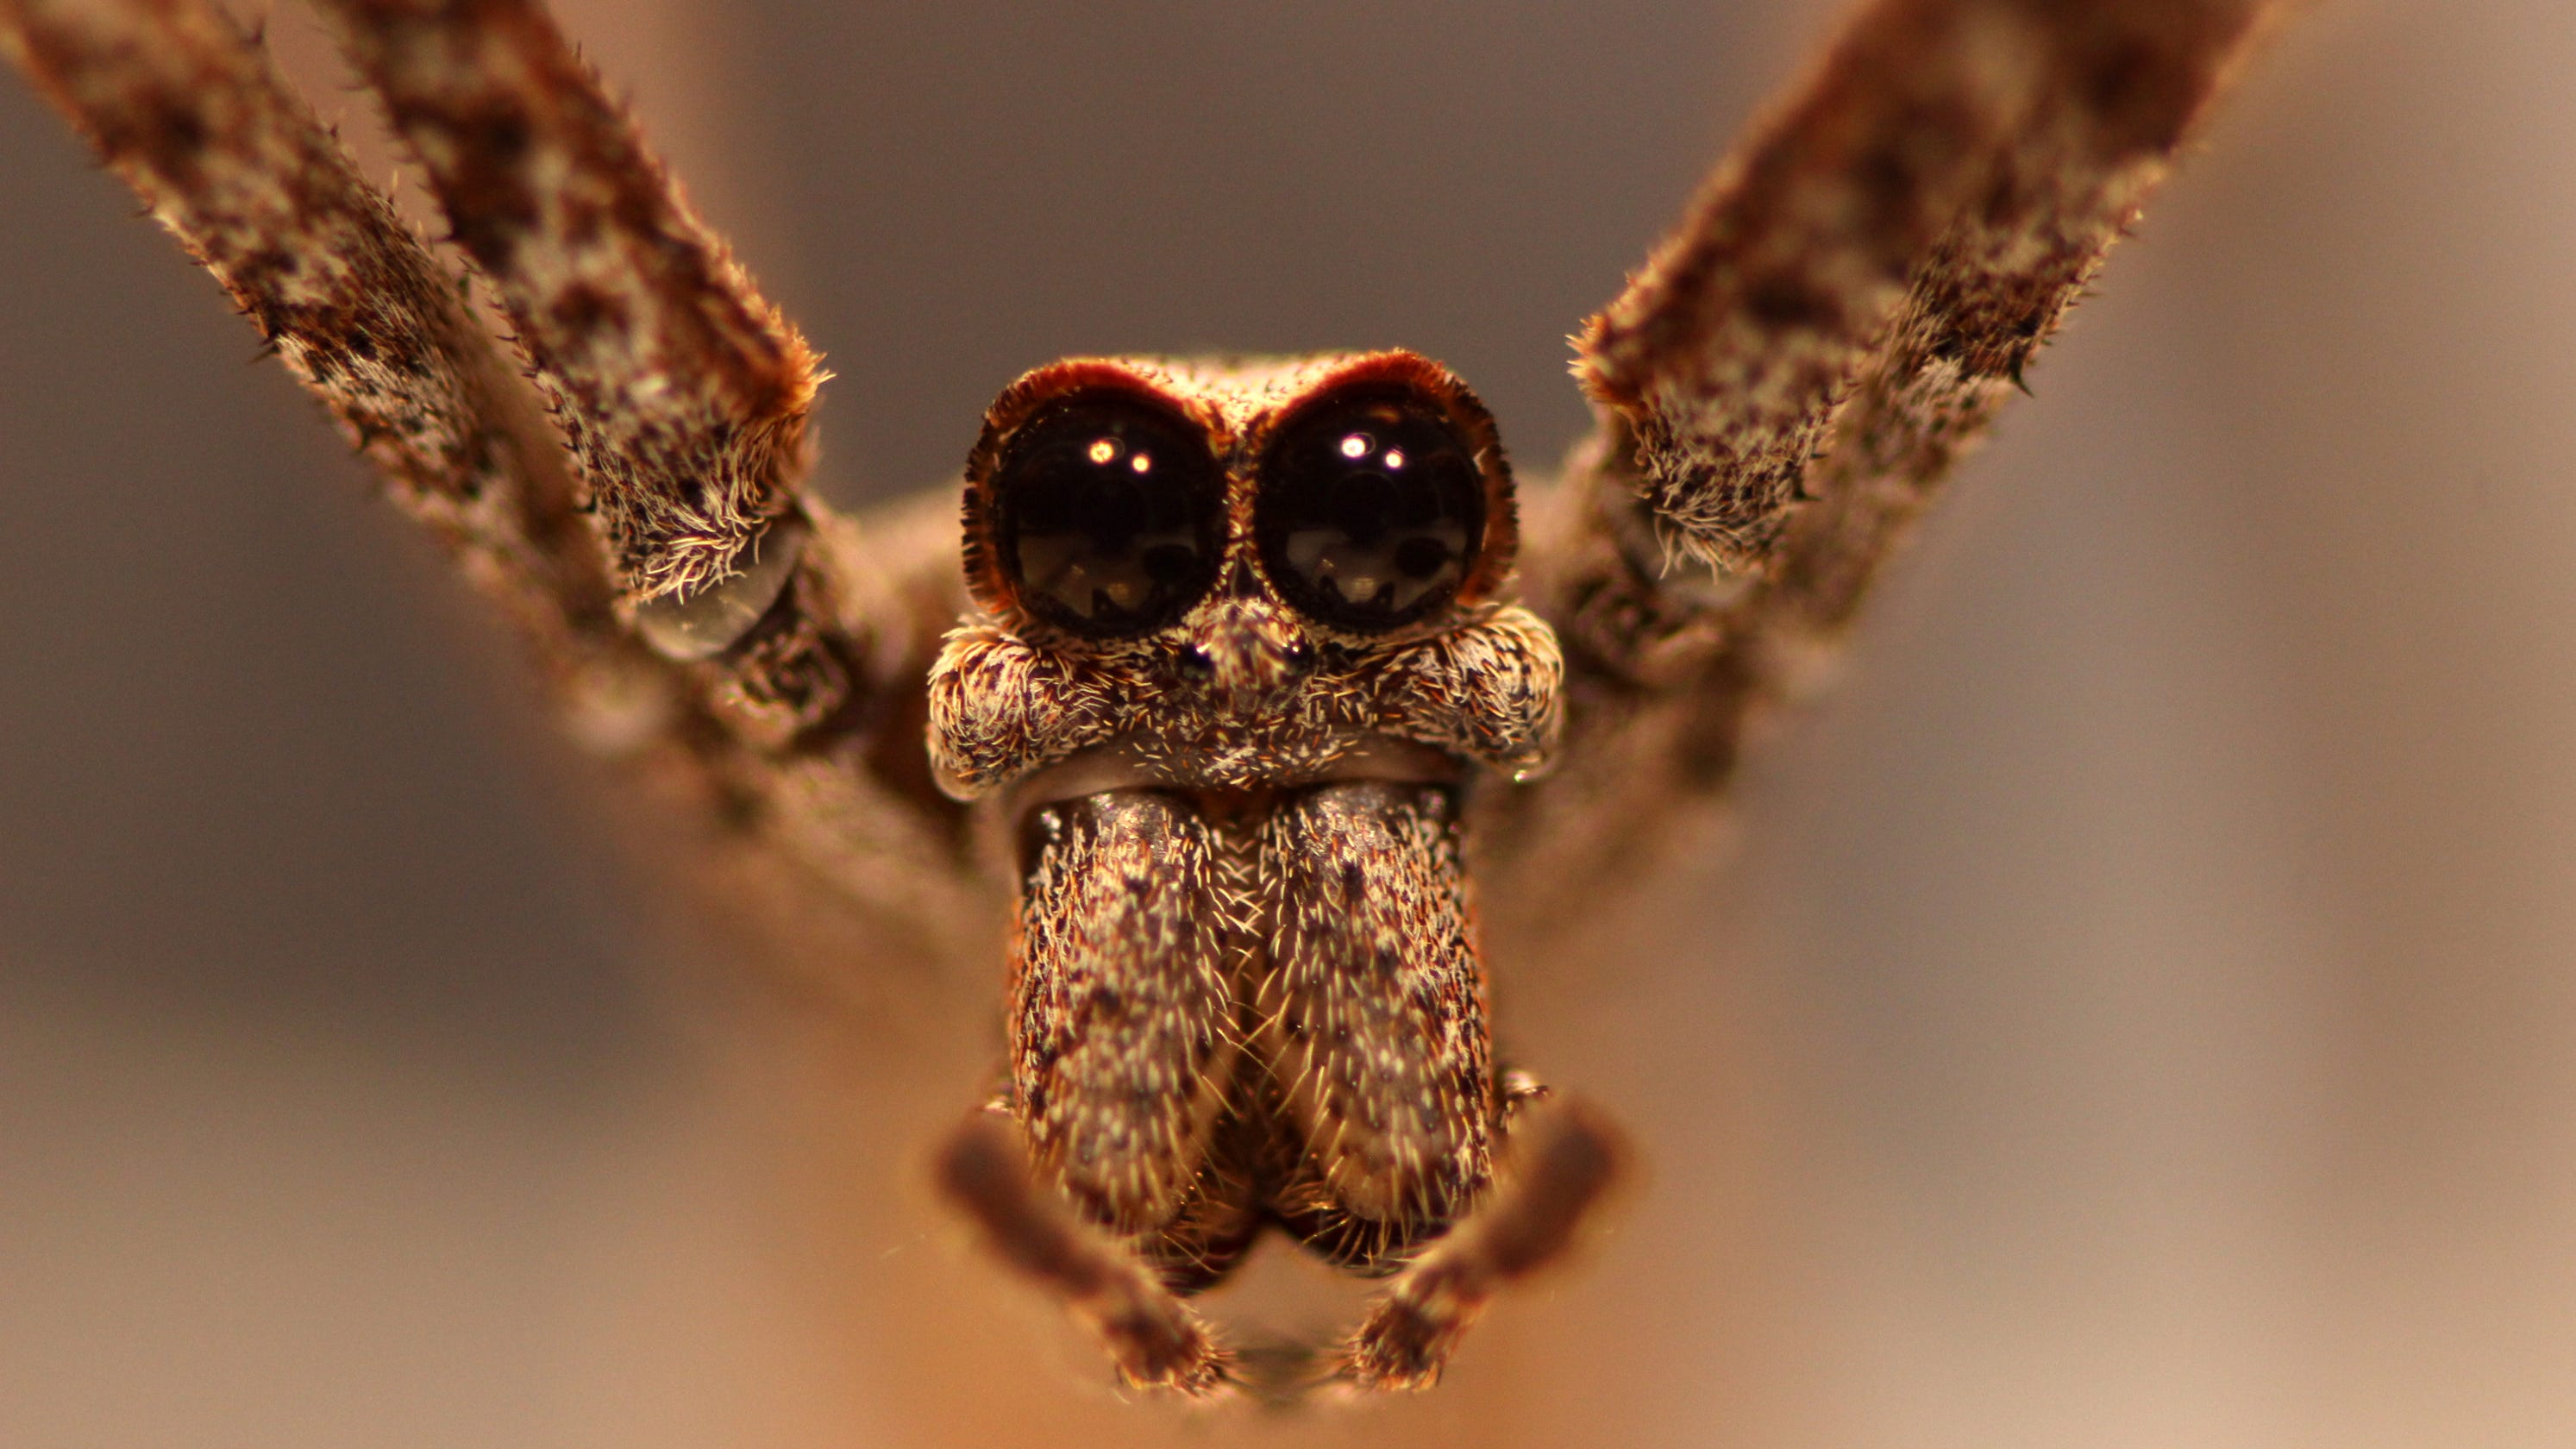 Ogre-faced spiders don't need ears to 'hear' their prey, study finds. These large-eyed nocturnal predators snag food out of the air.